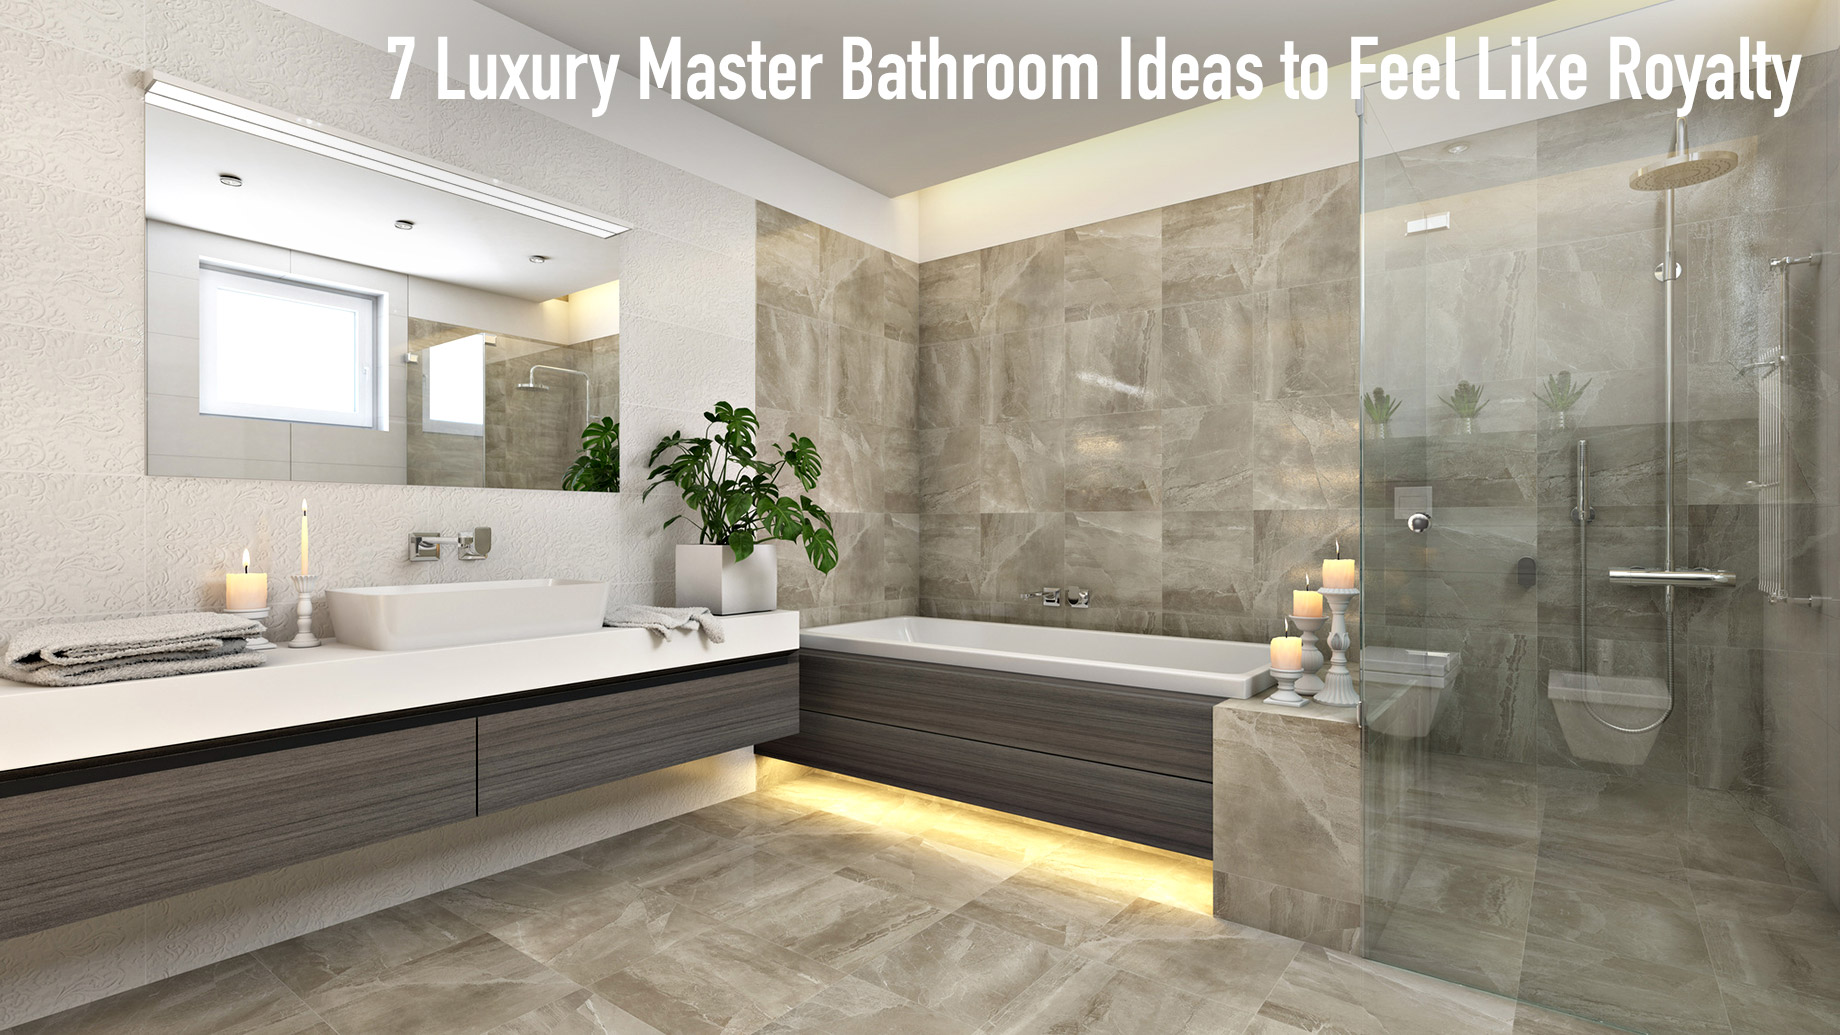 7 Luxury Master Bathroom Ideas To Feel Like Royalty The Pinnacle List